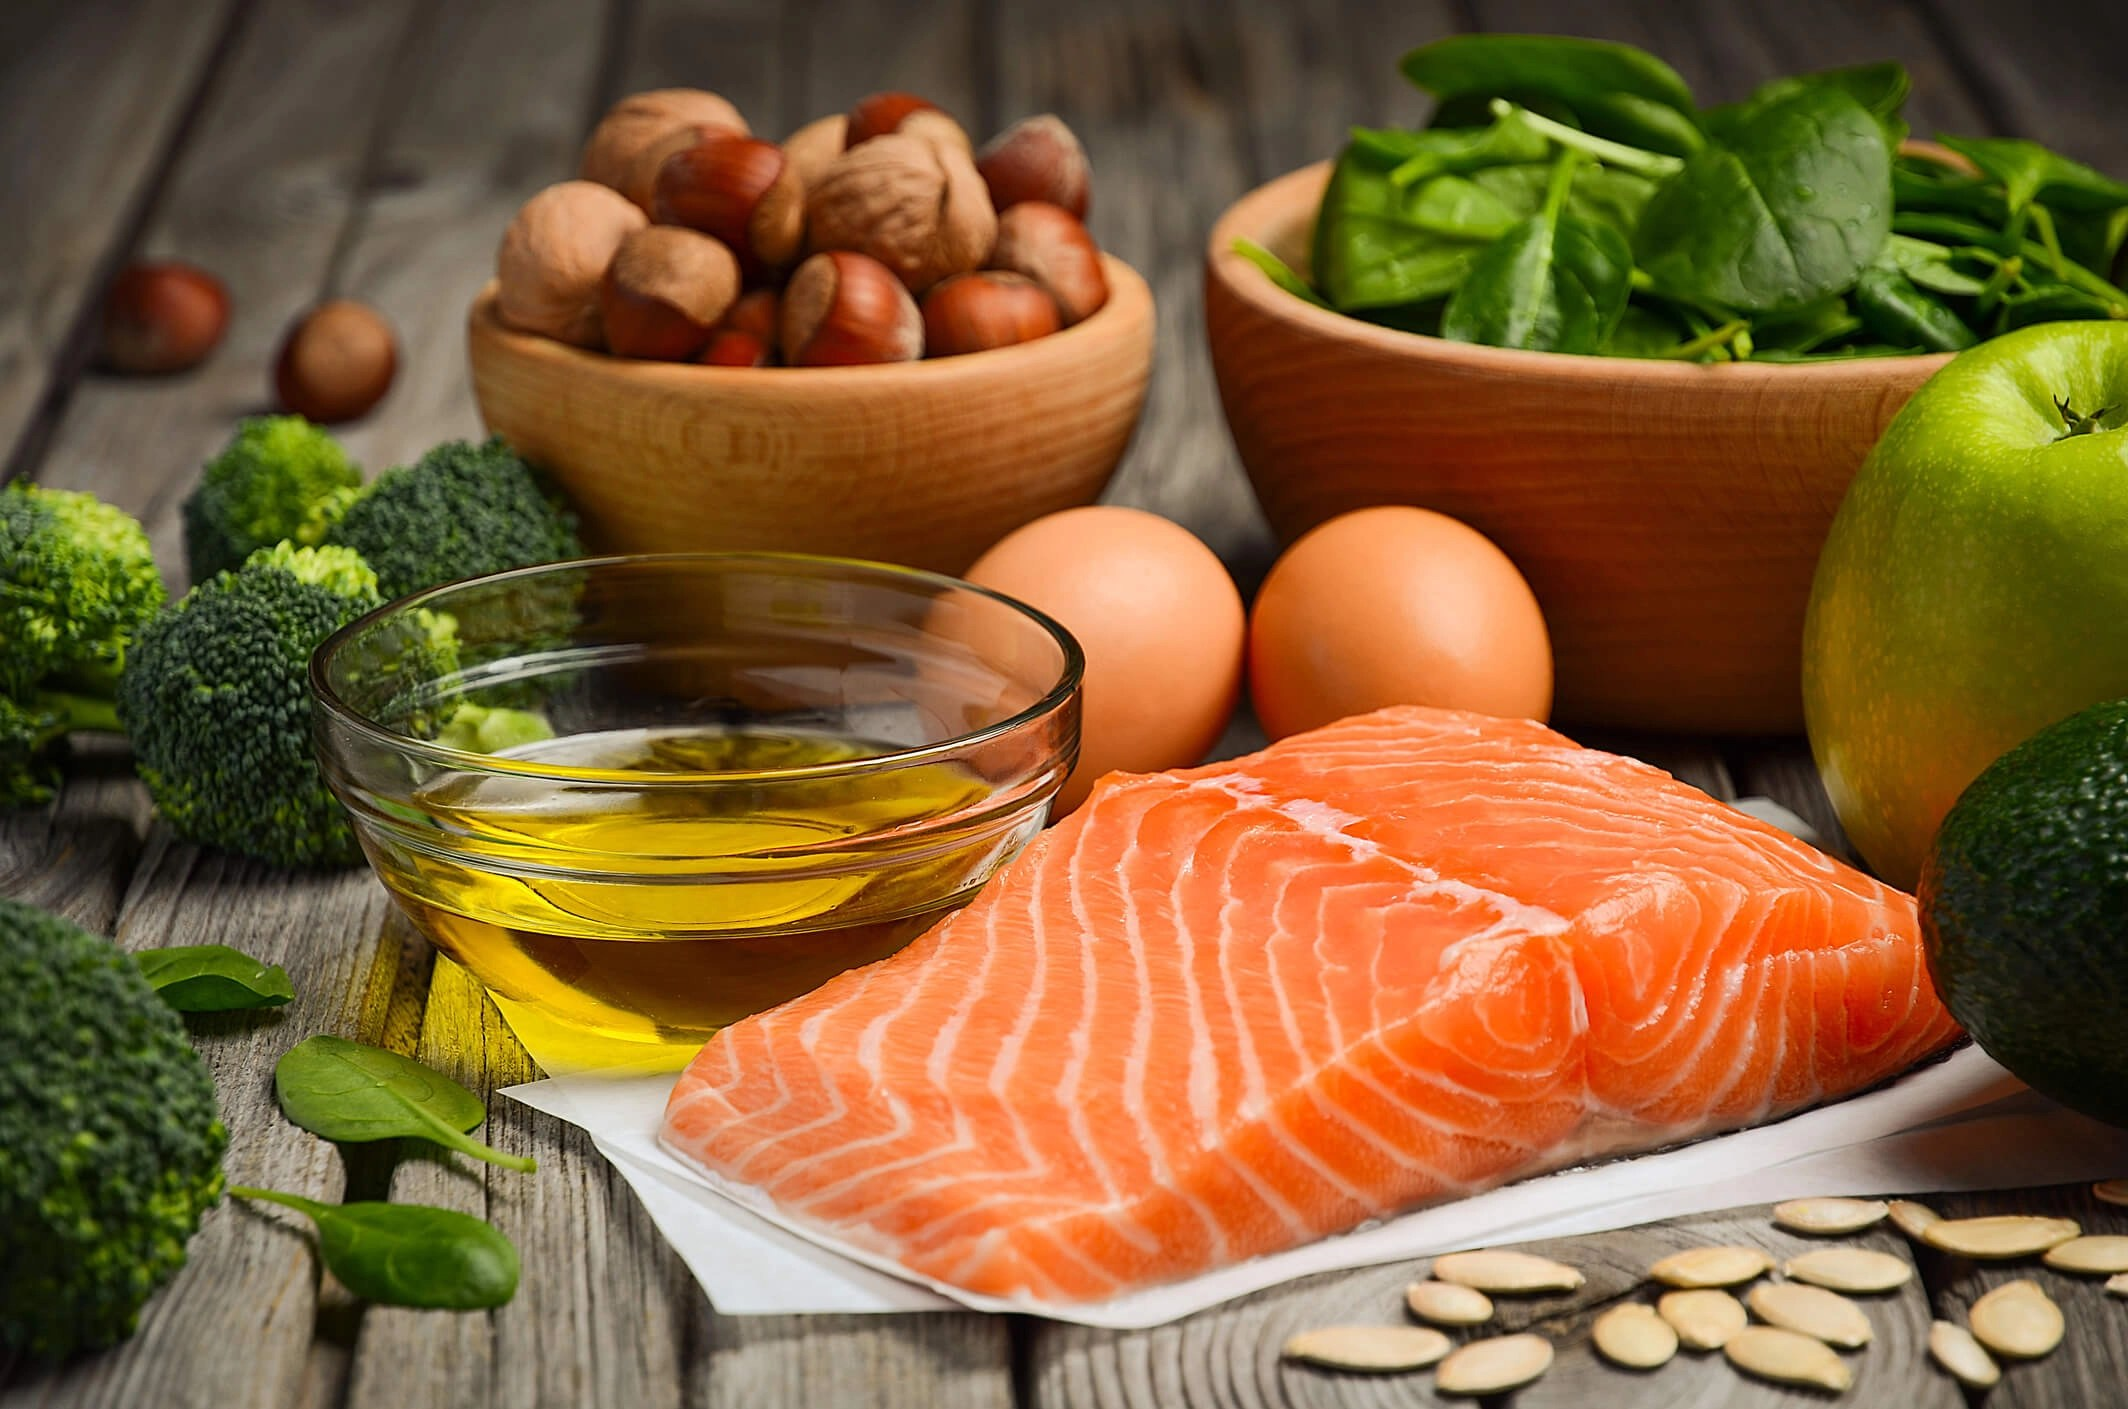 Tropical oils saturated fats may be back on your okay list